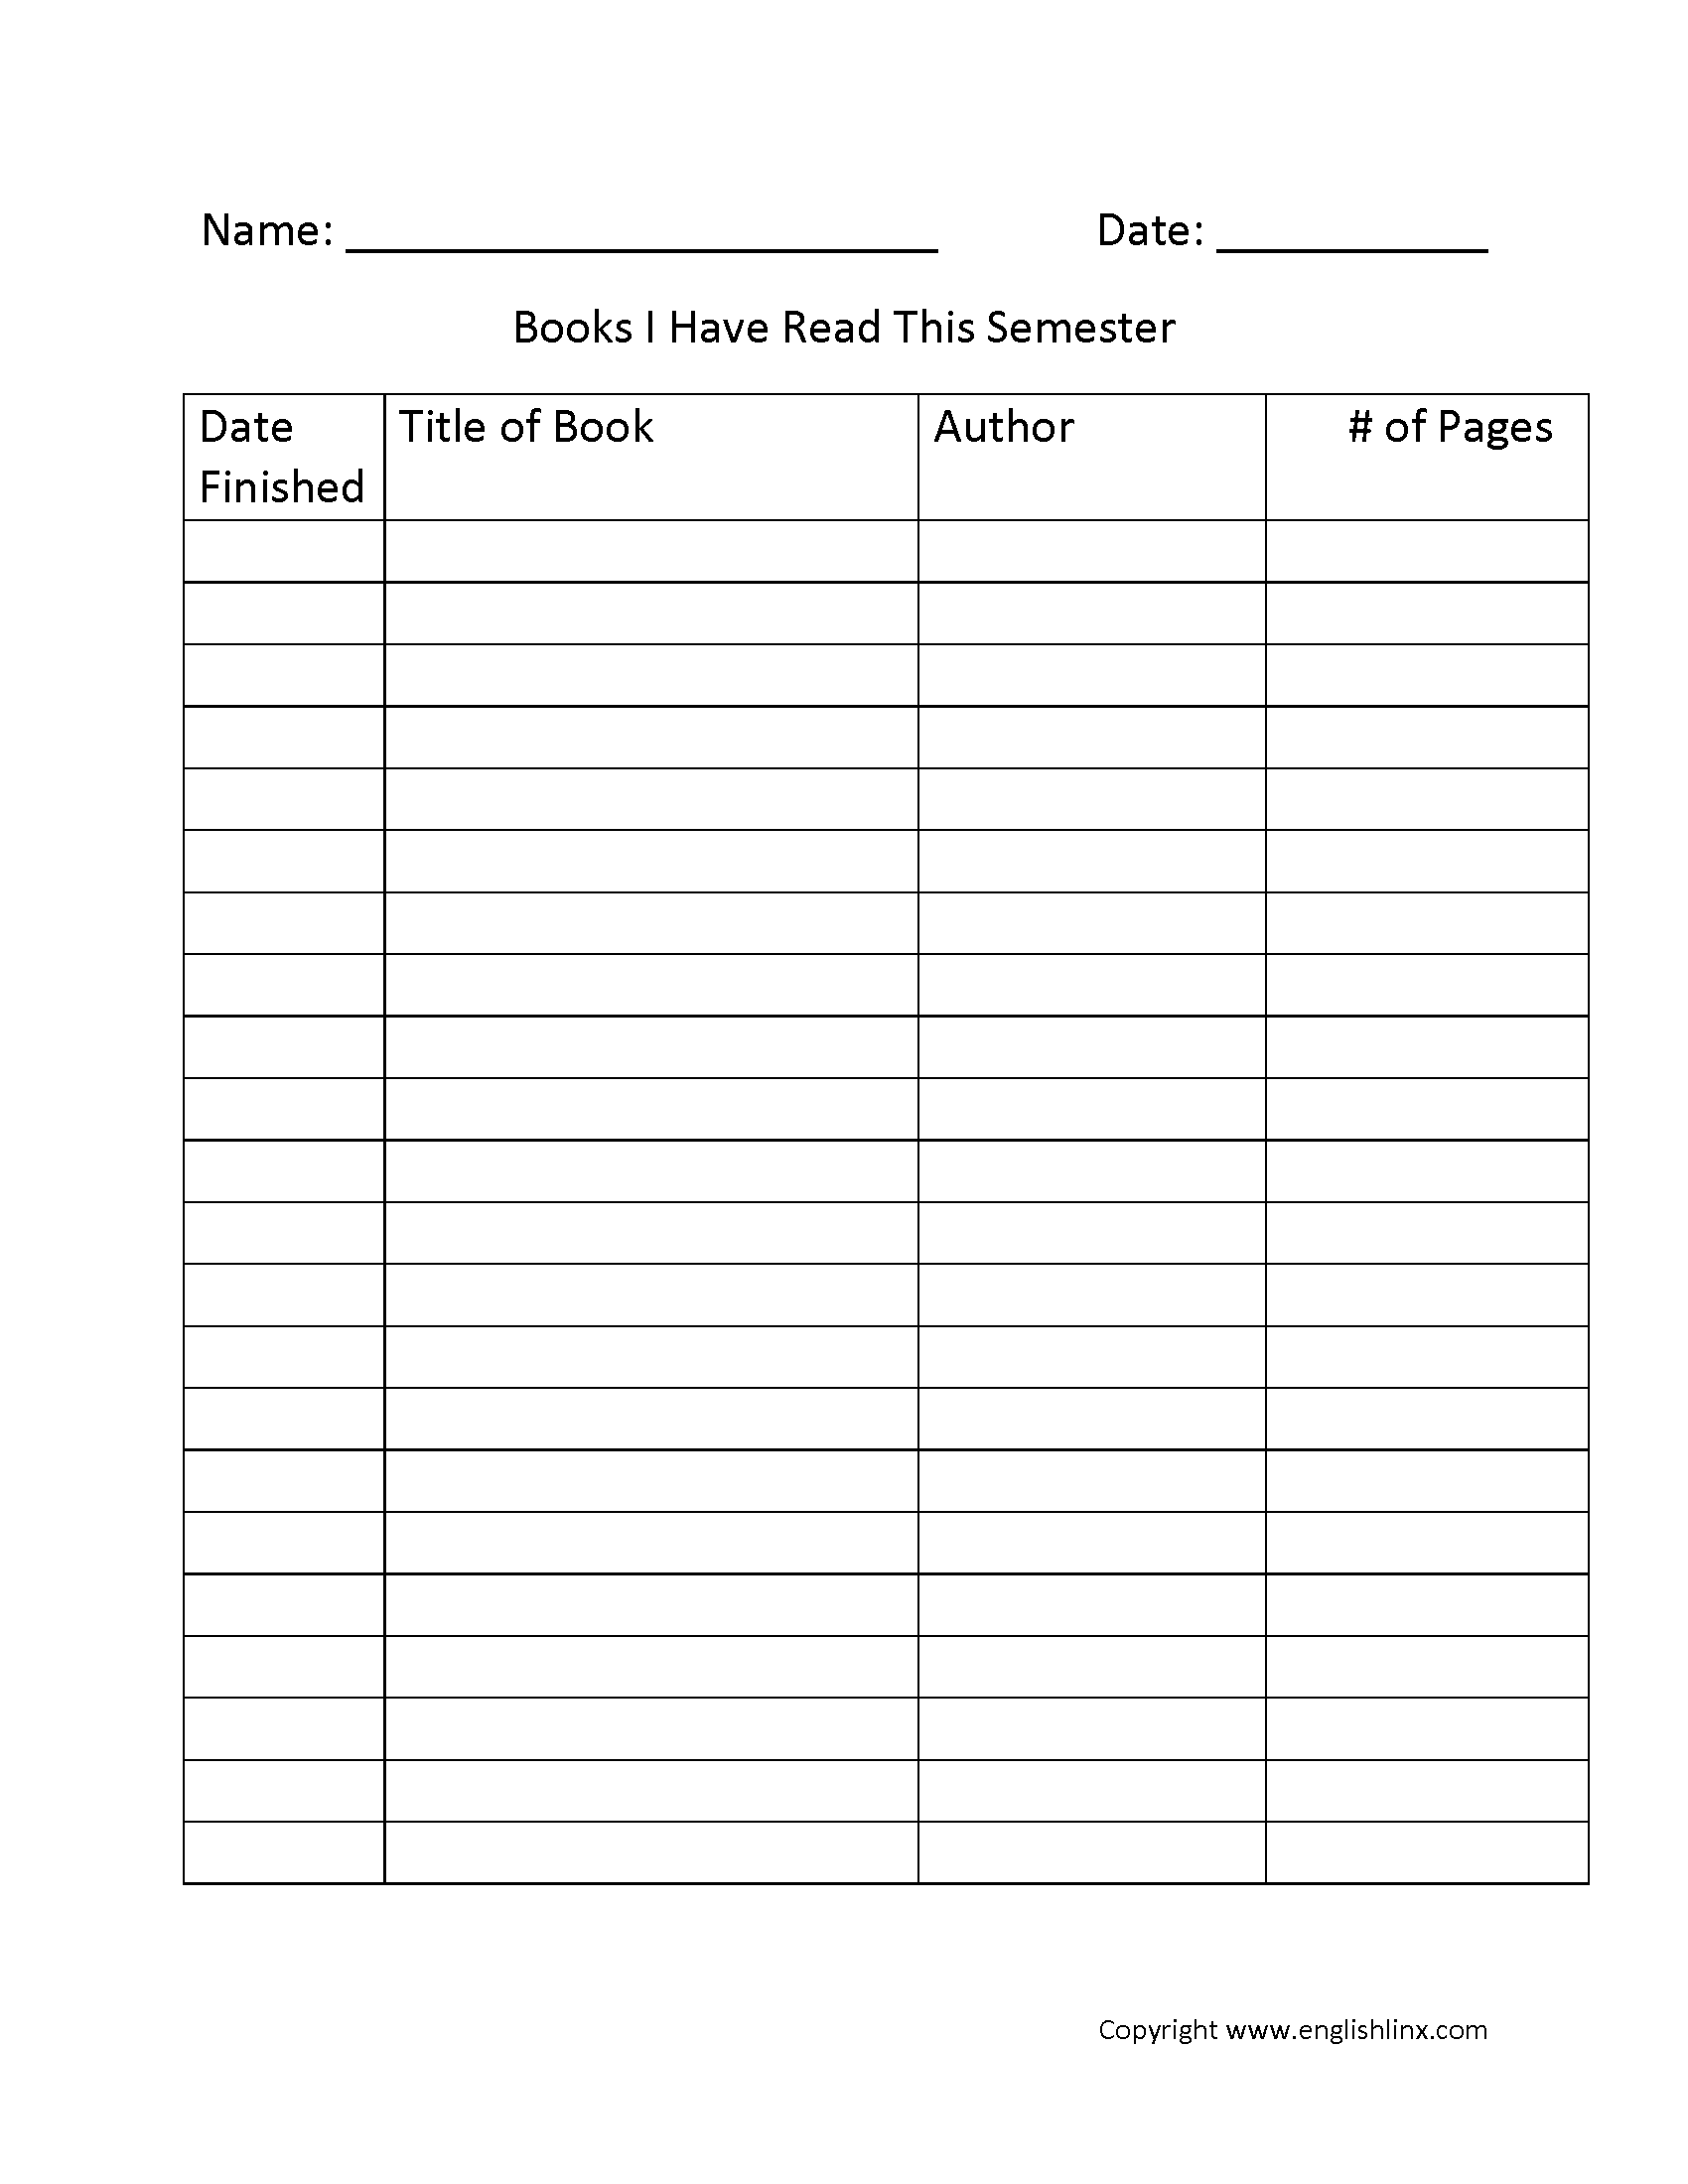 Books Read Semester Reading Log